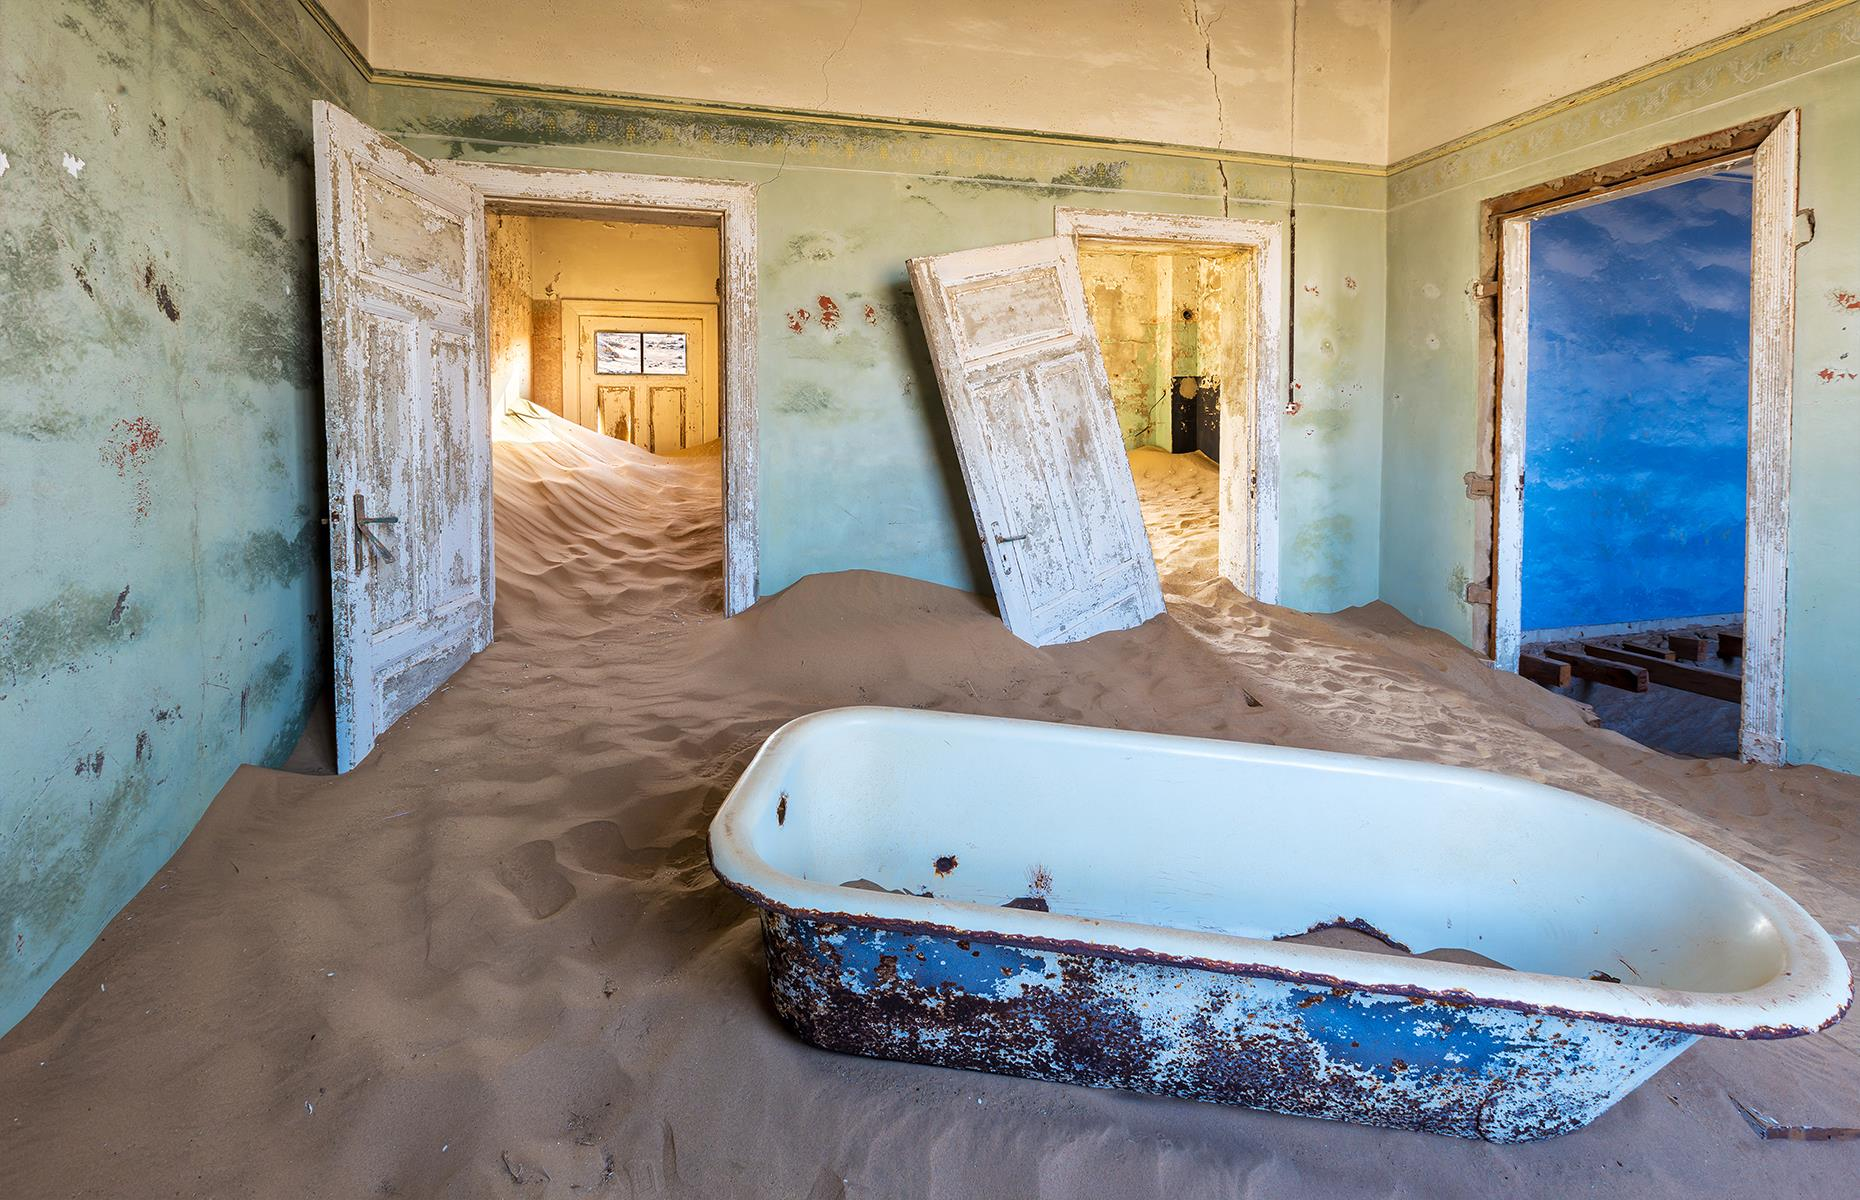 Slide 59 of 68: Then in 1928, a far bigger diamond deposit was discovered south of Kolmanskop, and many of the inhabitants left in their search for treasure. By 1956, the town was completely abandoned and, today, the shifting red desert sands sweep into the decrepit houses.